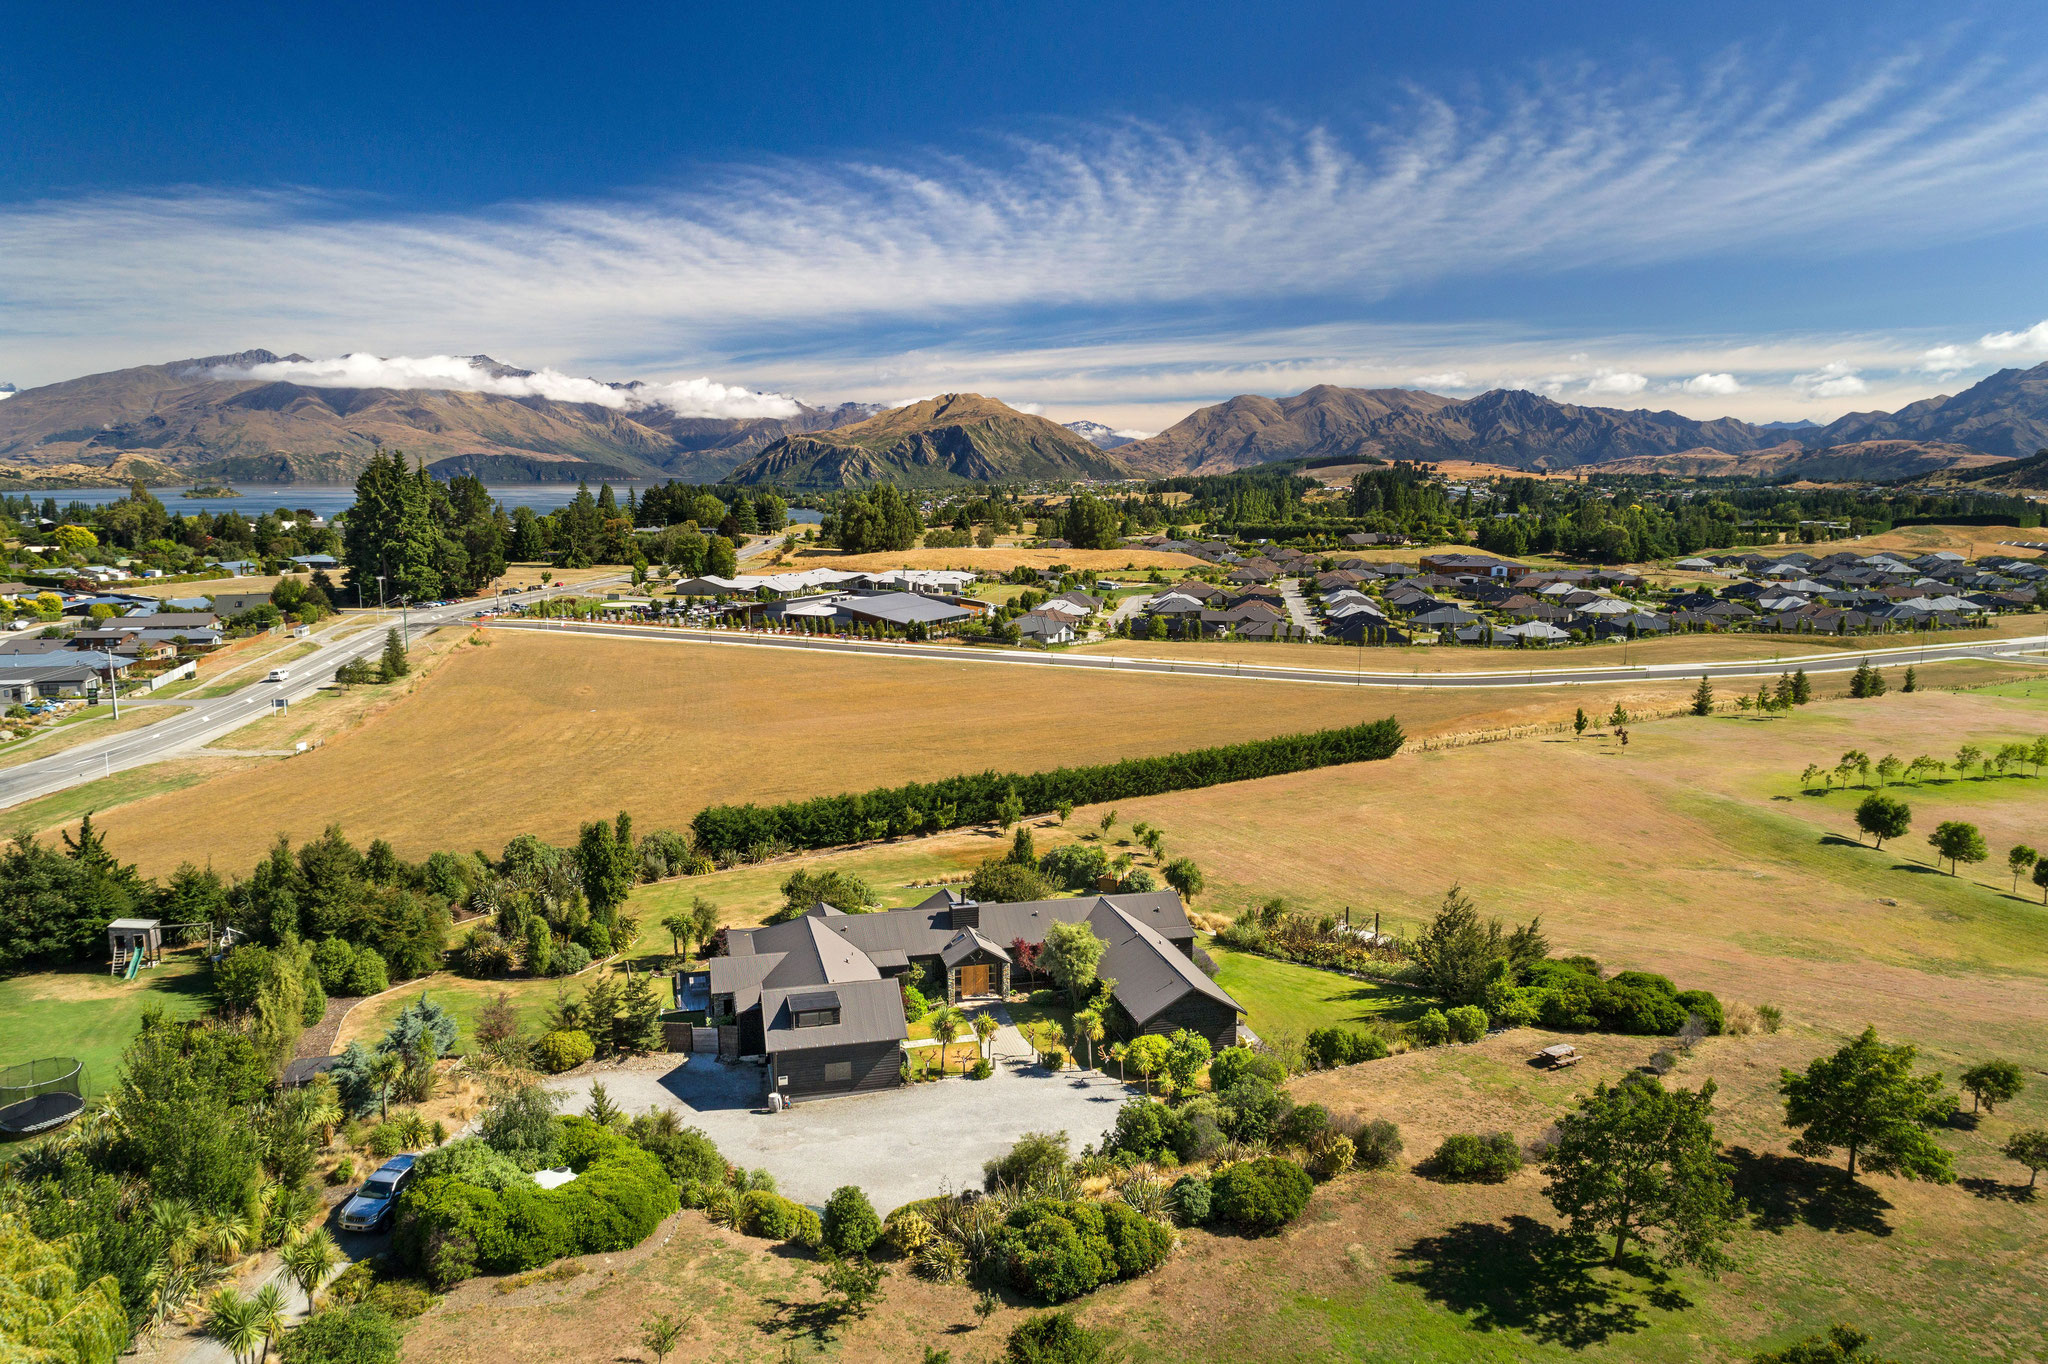 Mountain Range Lodge, Sales Specialists and Representation in Australia and New Zealand by GSA Hospitality